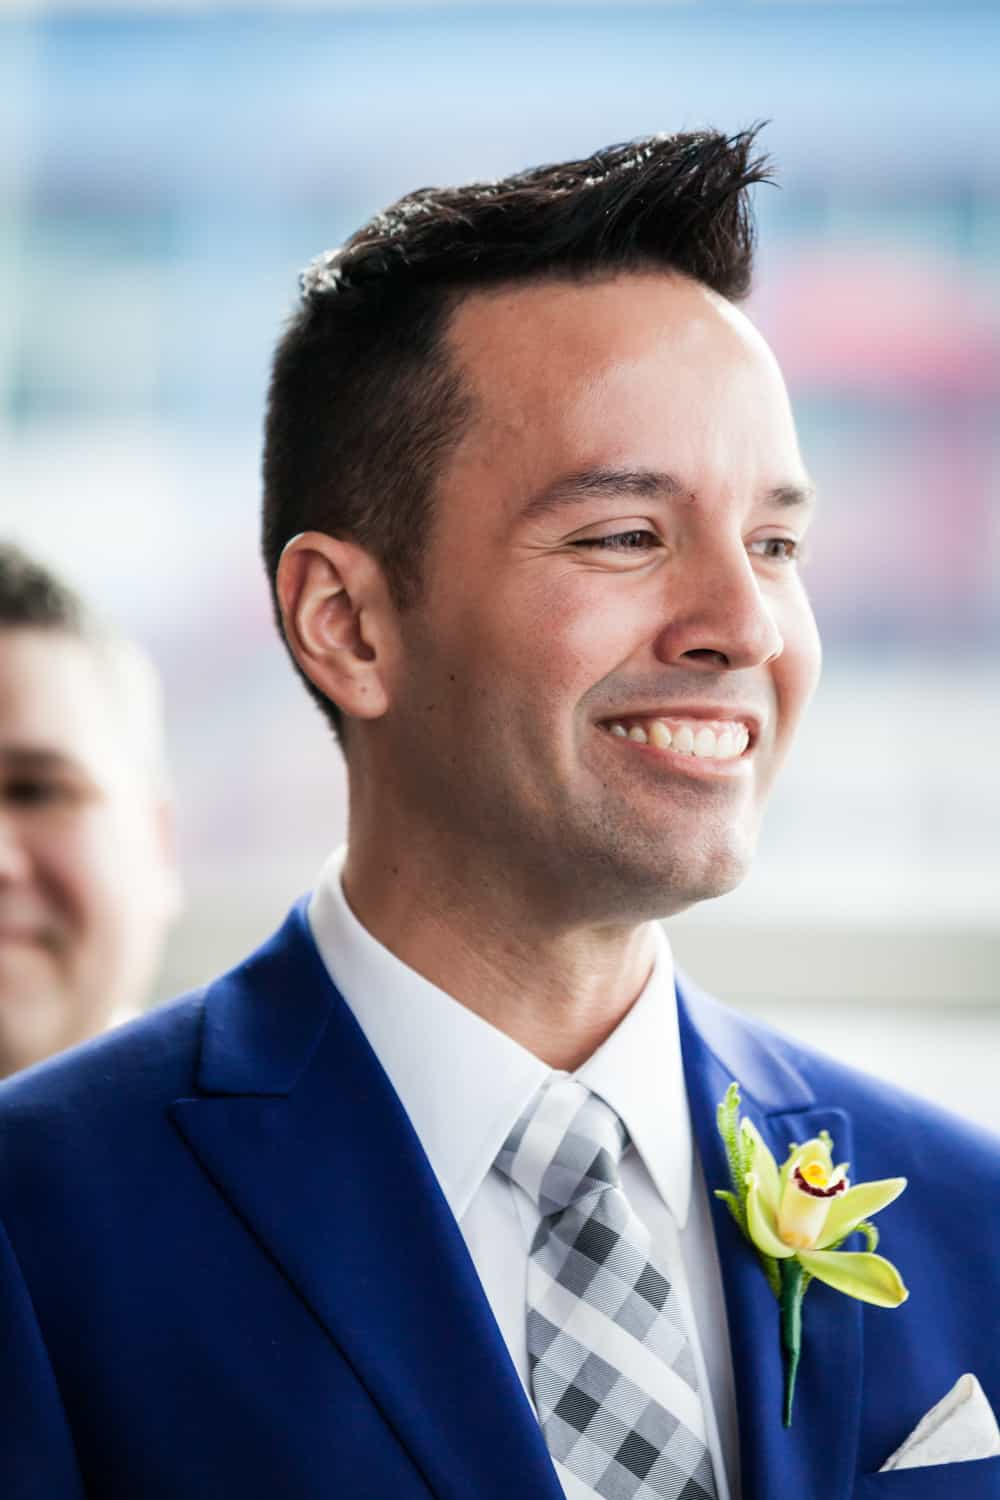 Groom smiling during ceremony at a Lighthouse at Chelsea Piers wedding